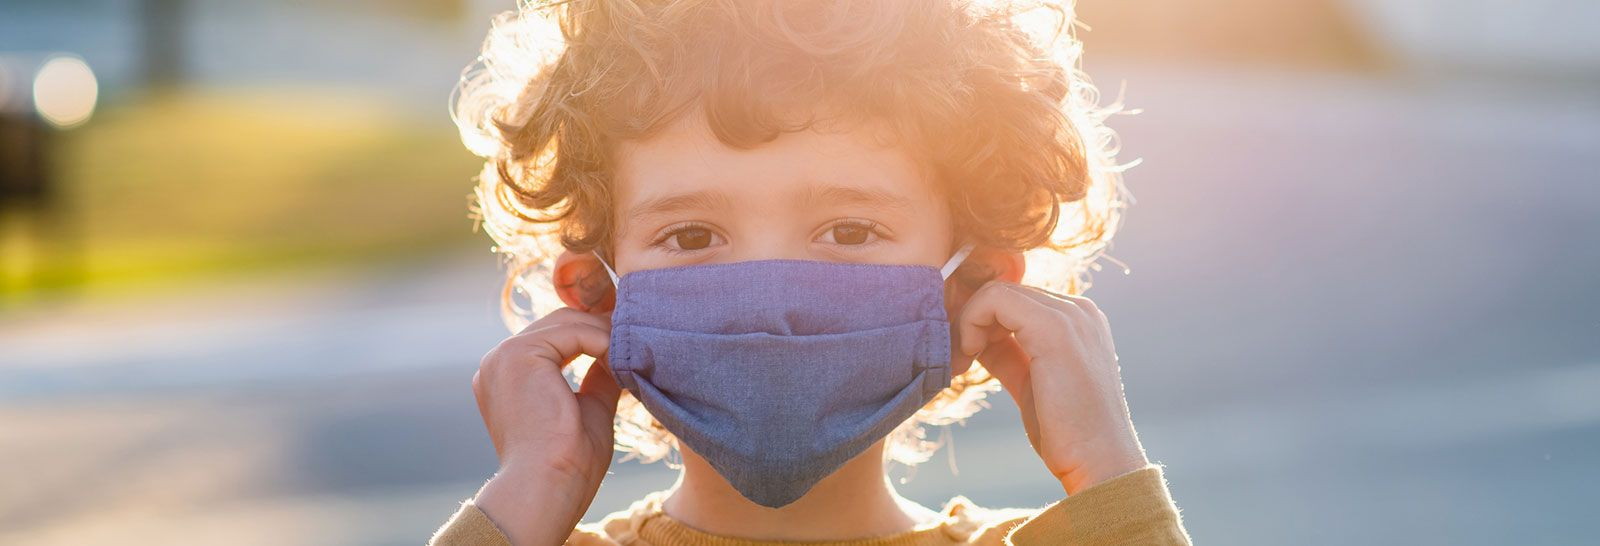 Young child wearing a face mask banner image